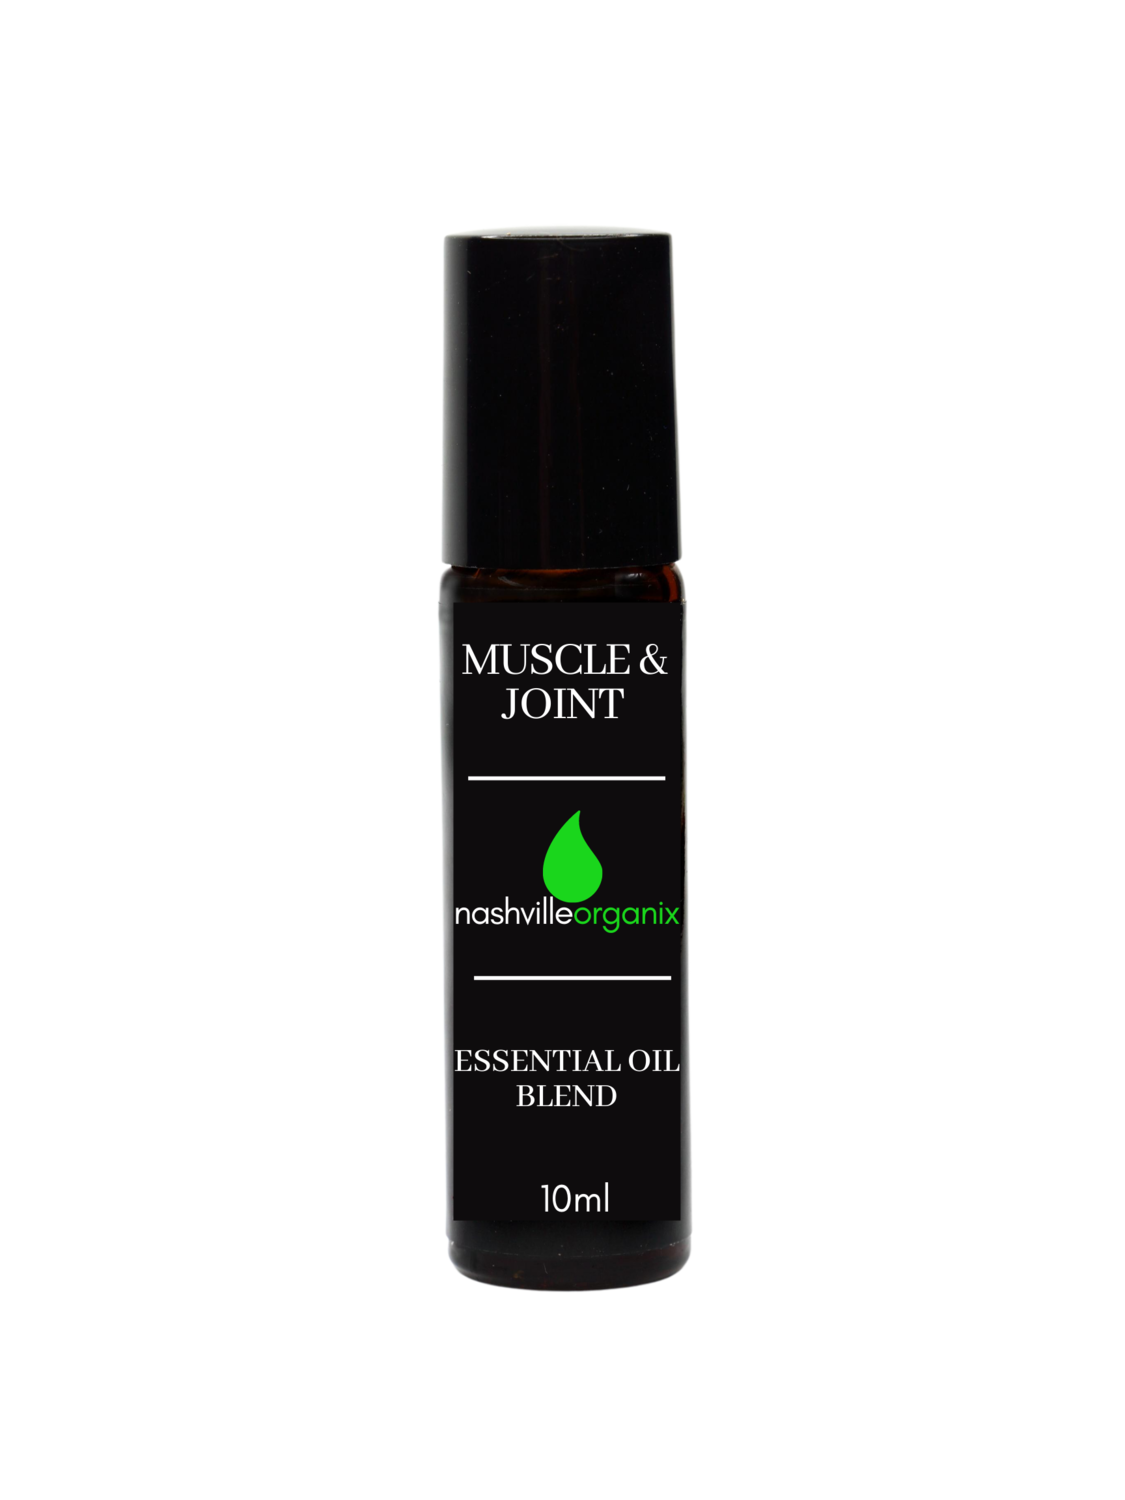 Muscle & Joint Blend